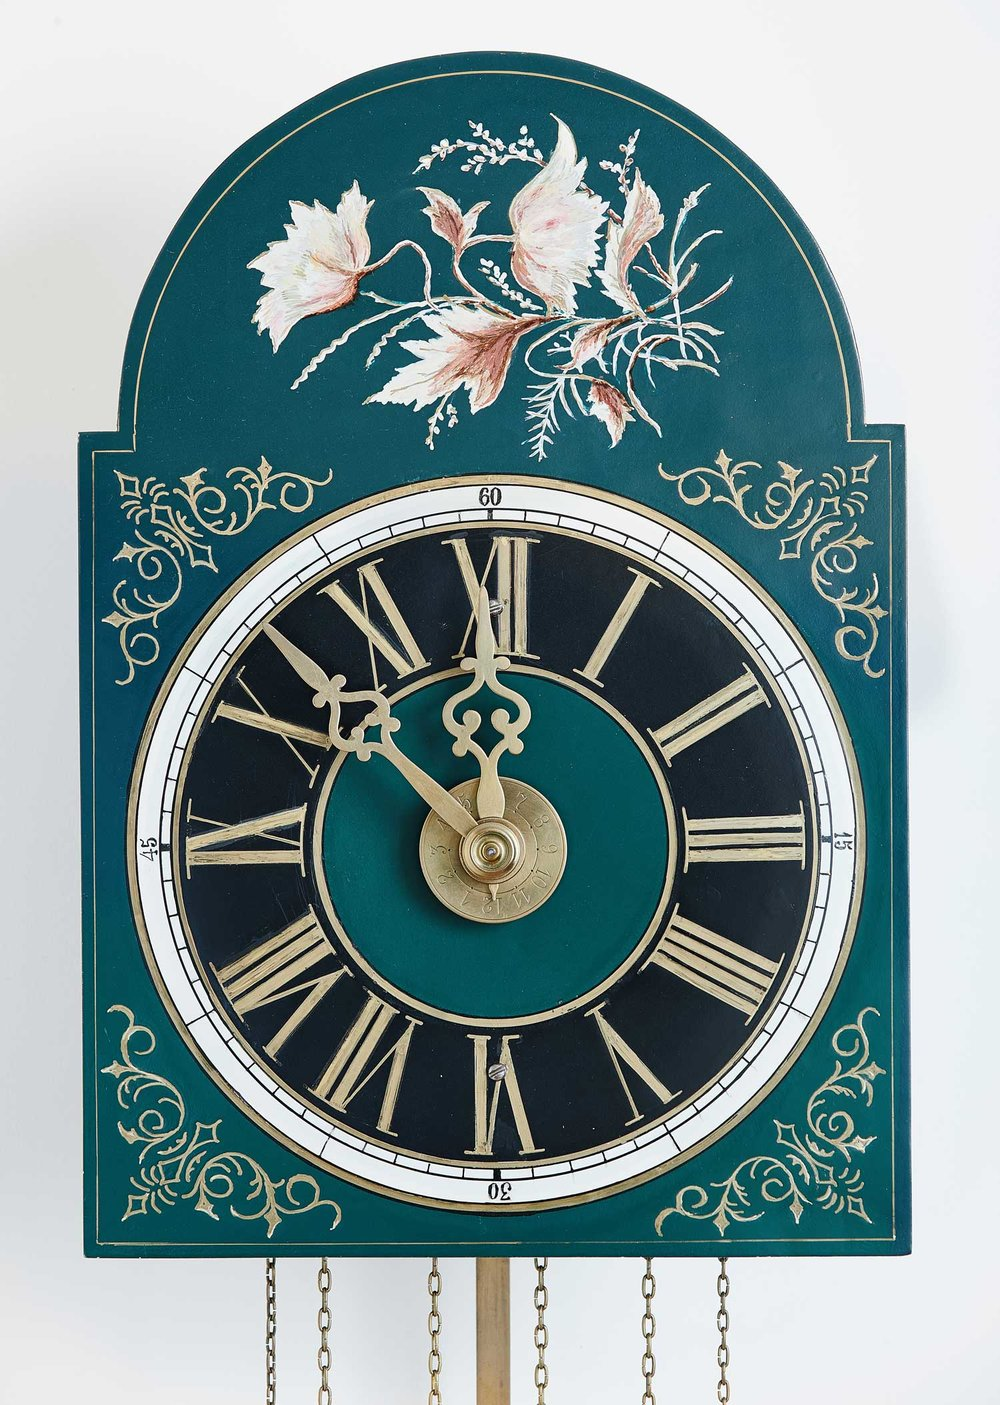 Kroeger Clock  made ca. 1910, restored and repainted by Arthur Kroeger. Early clocks had flat dials but around the mid-19th century clockmakers began hammering out the area around the numbers resulting in a raised dial. Background photo: A Mandtler clock made in 1899.